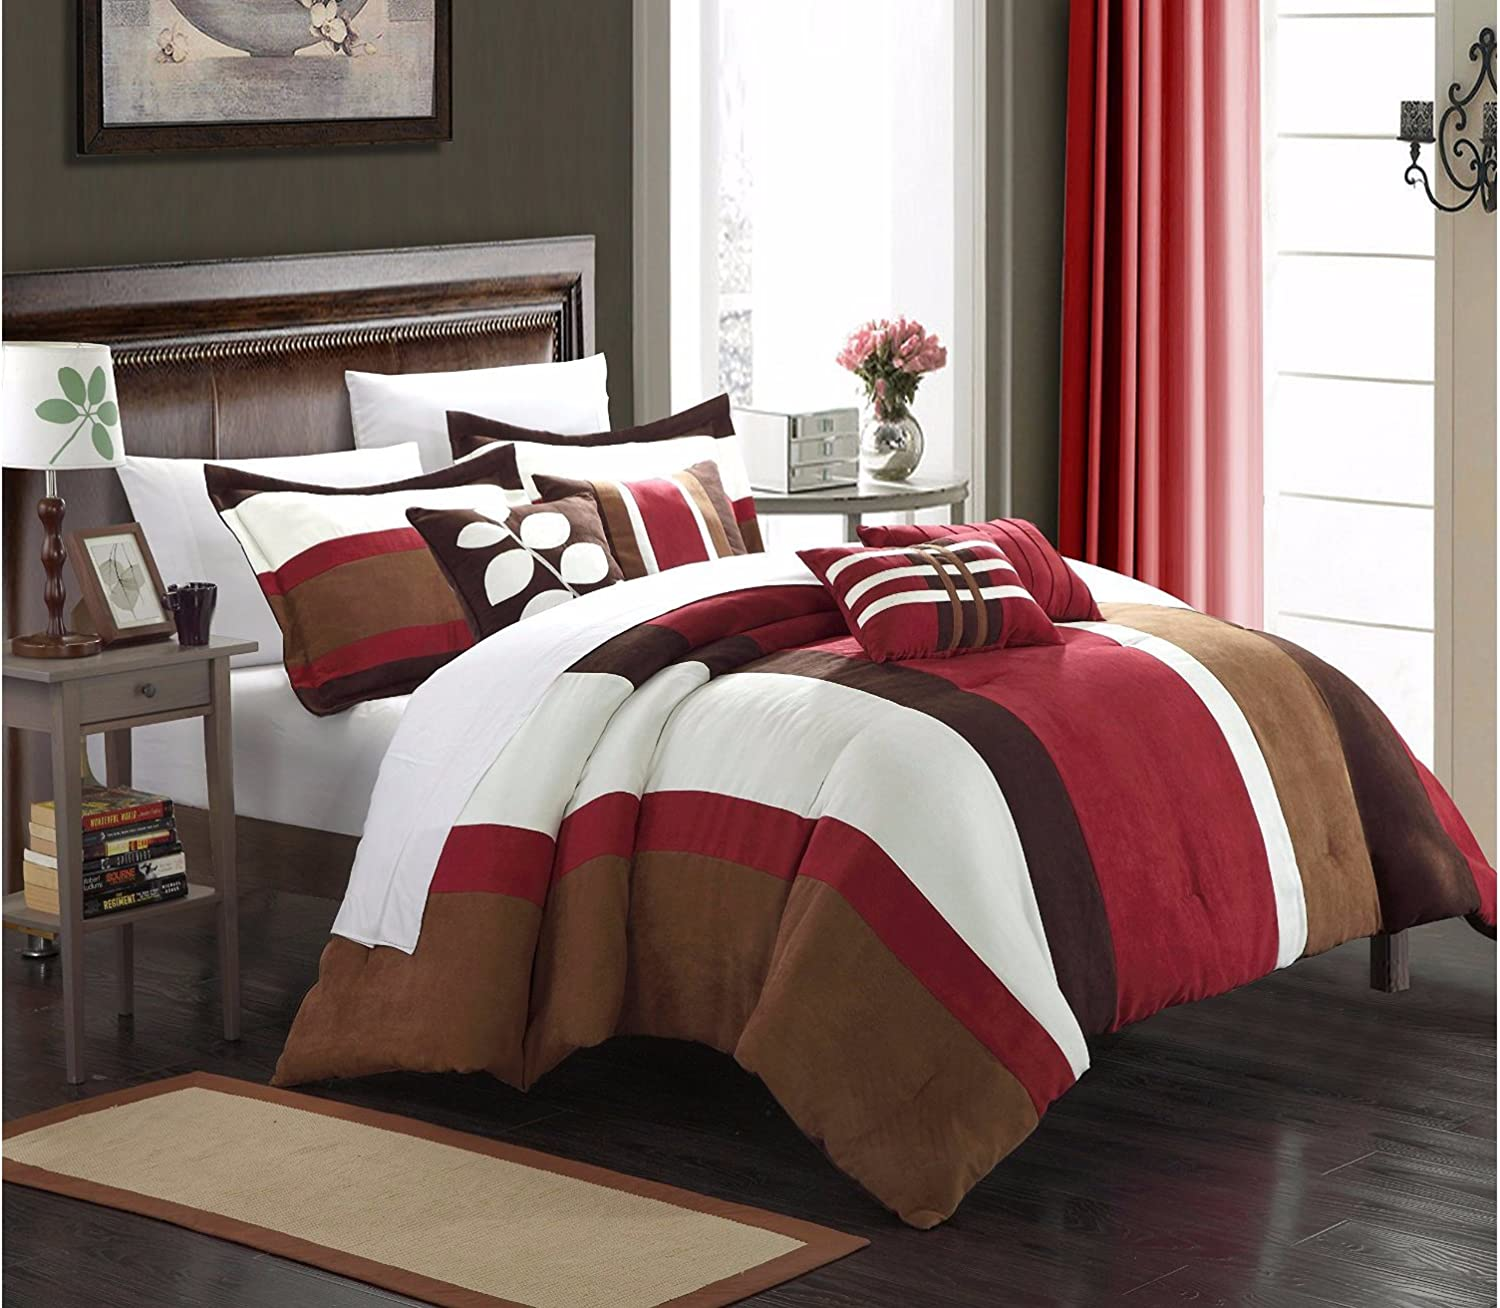 Chic Home 7 Piece Highland Plush Micro Suede Striped Comforter Set Queen Blue Home Kitchen